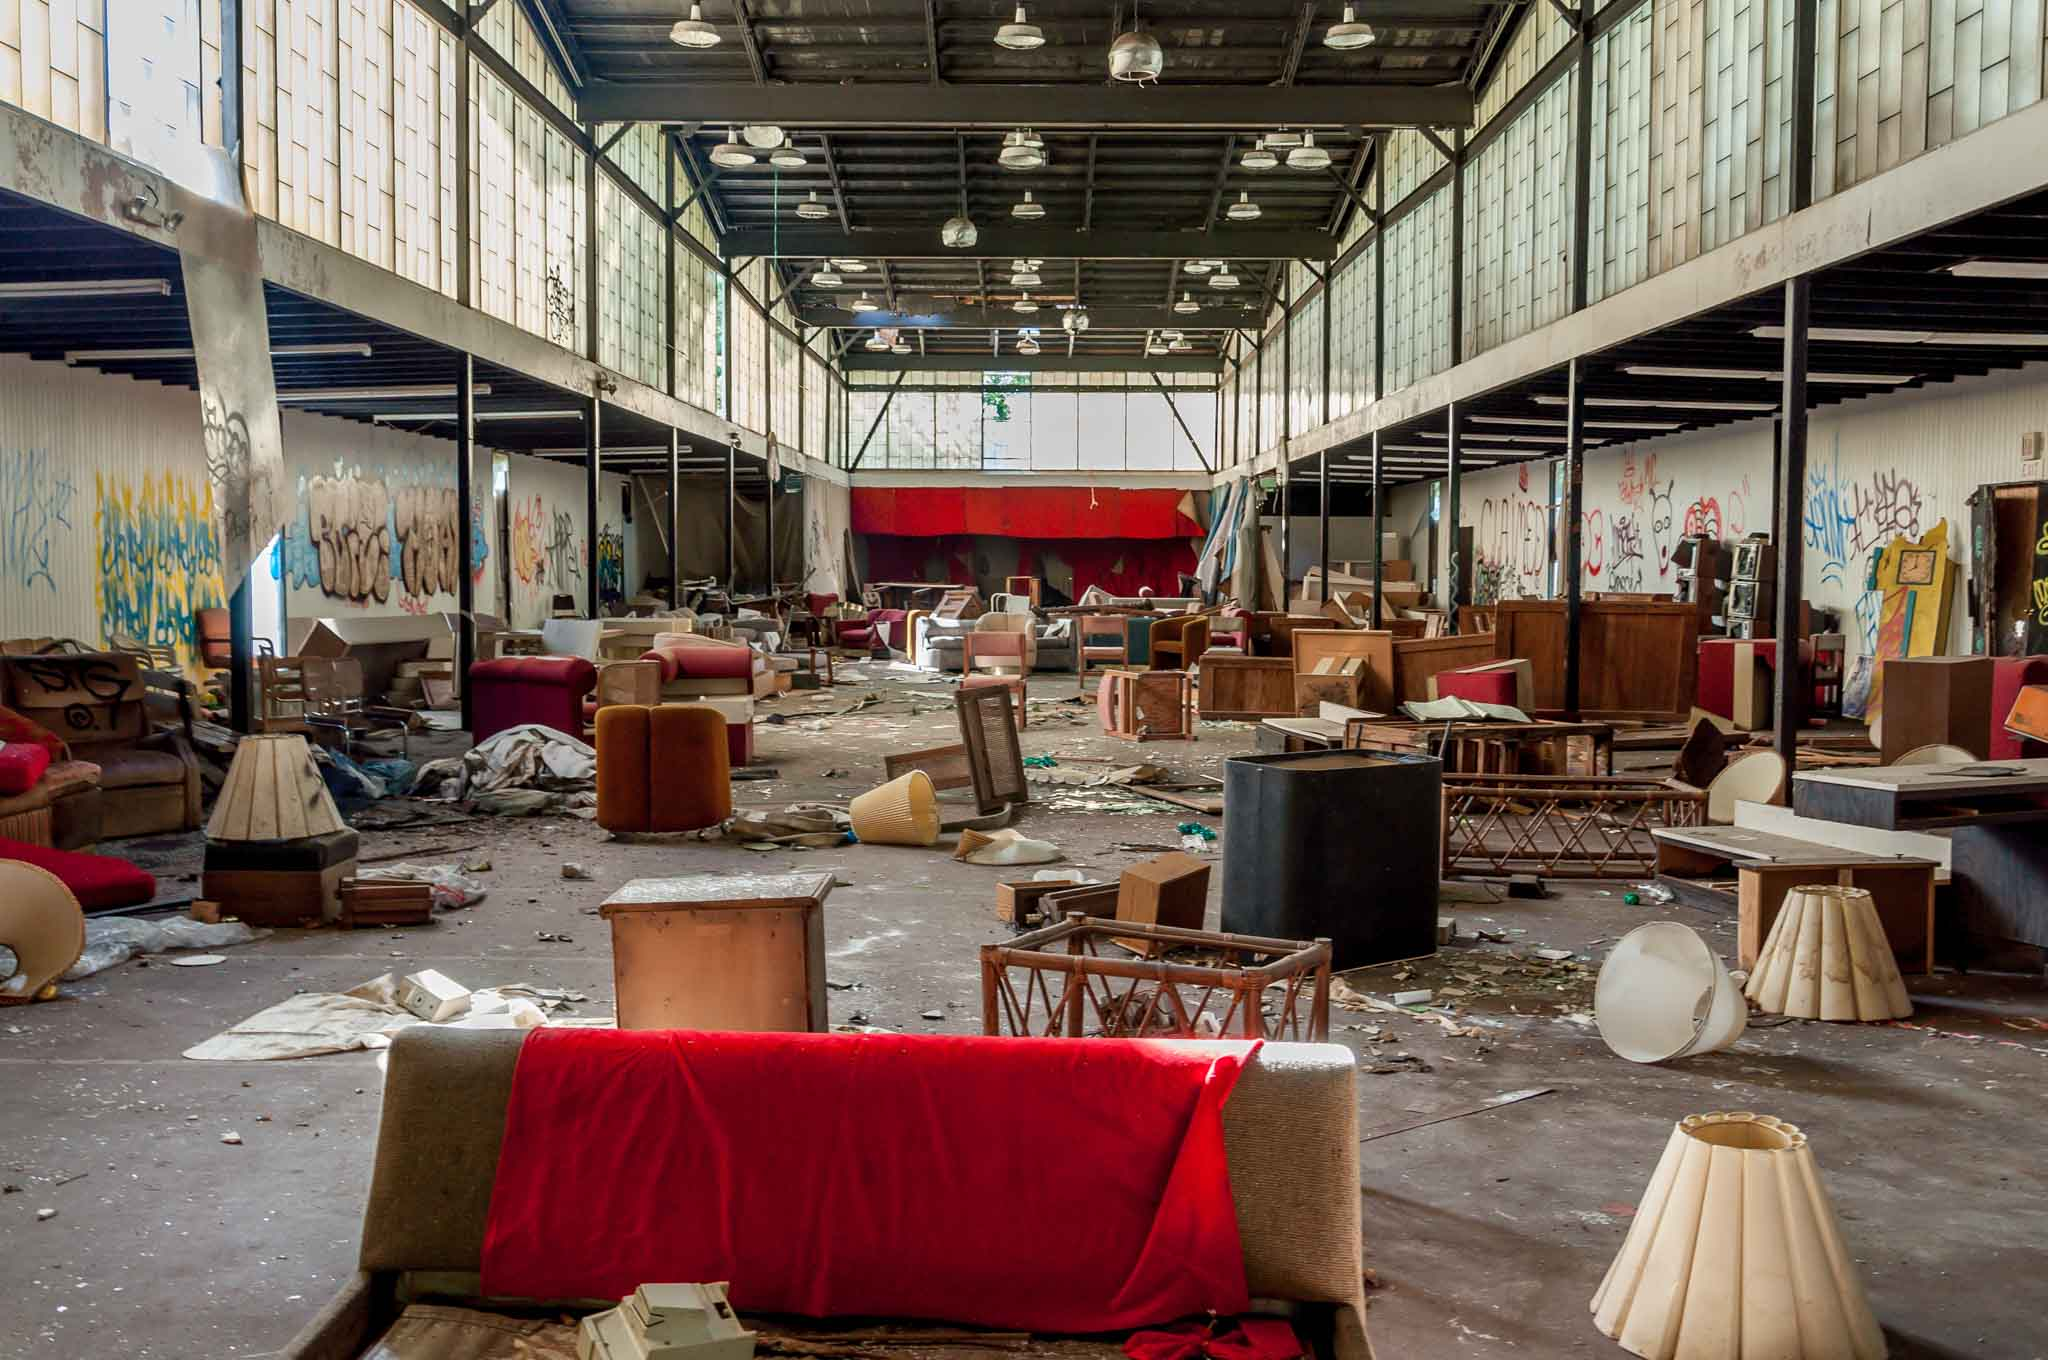 Remains of a furniture sale at the Penn Hills Resort